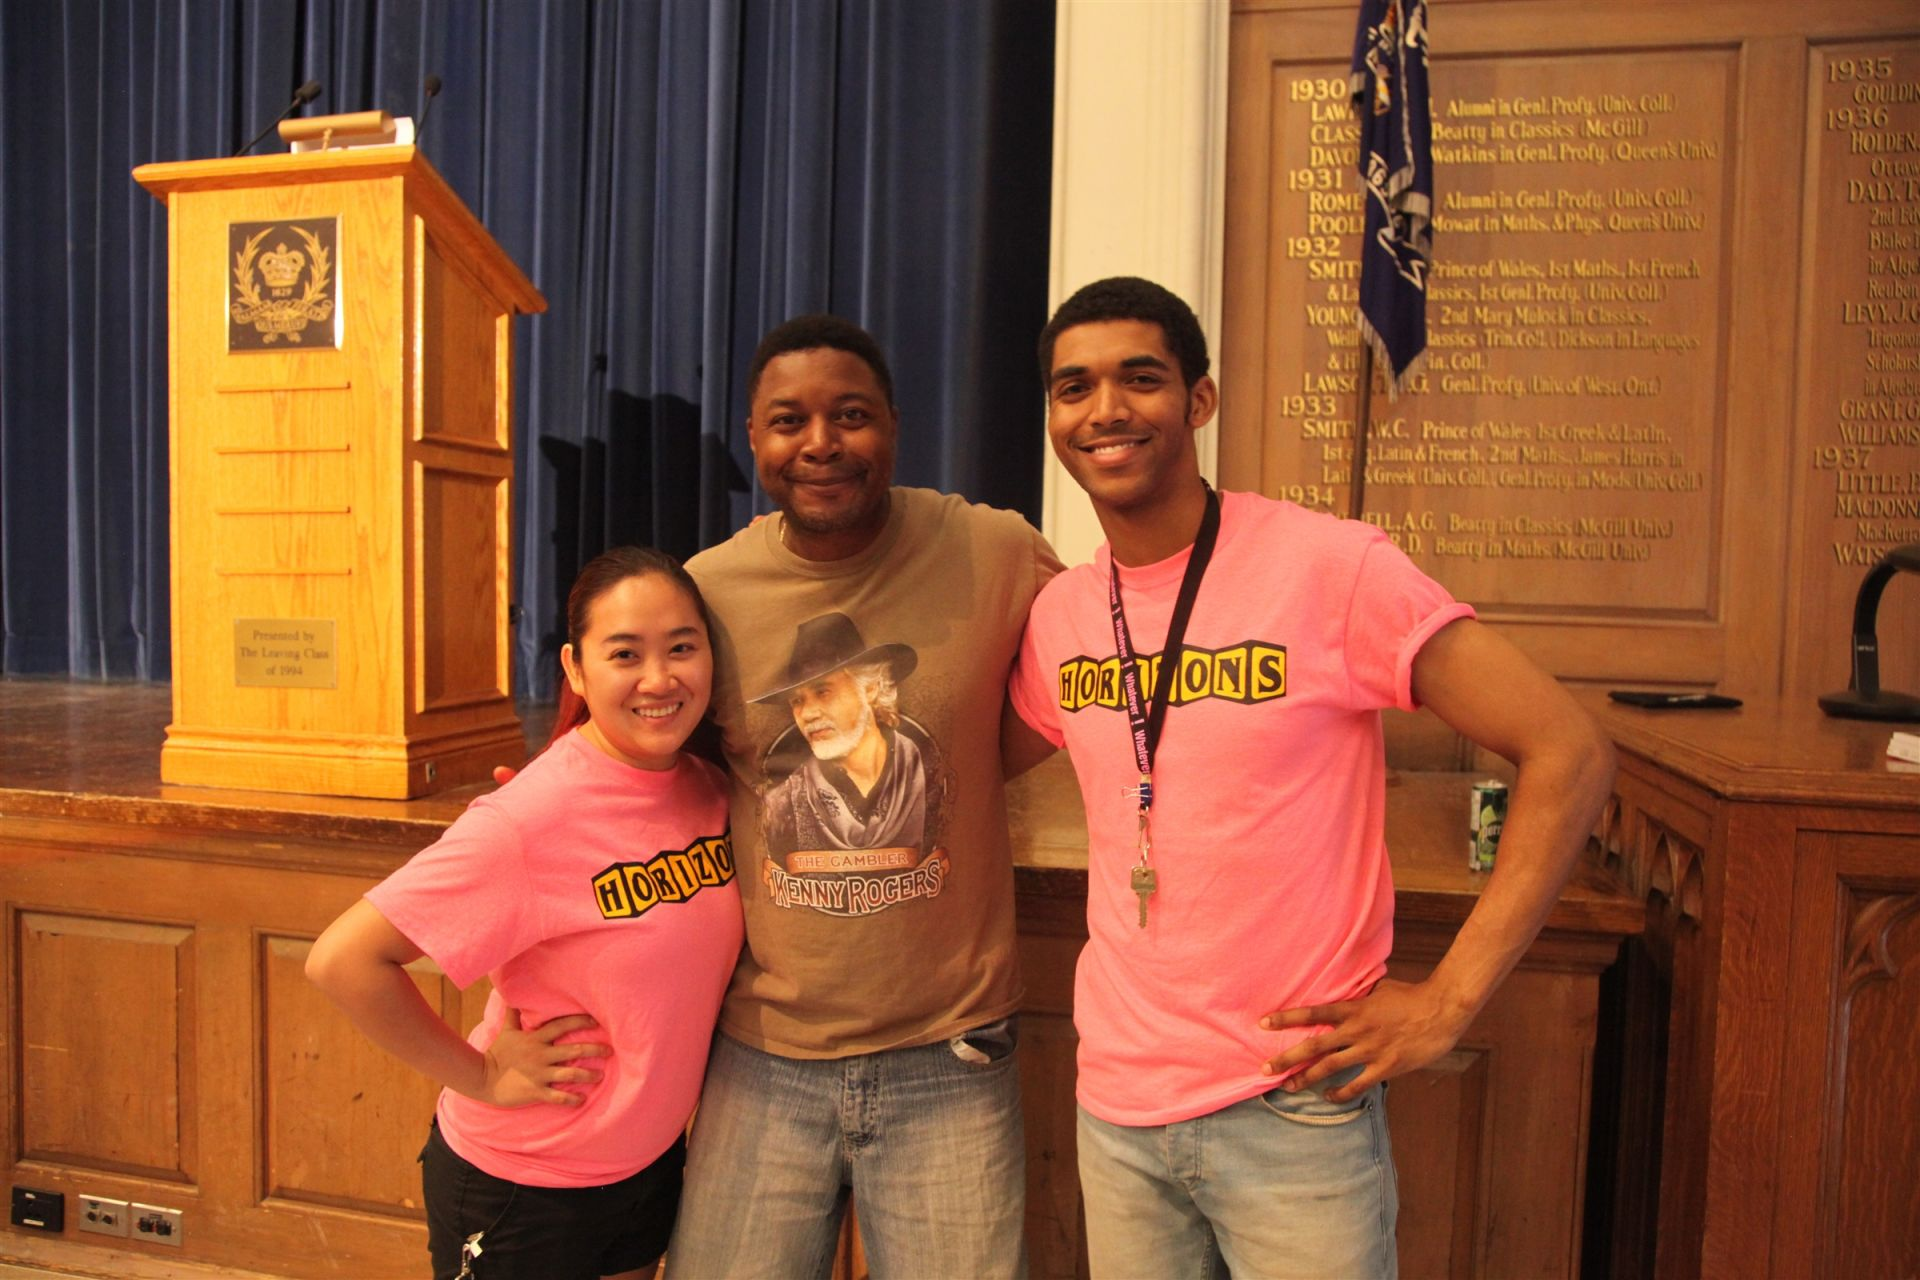 Dwayne Morgan (center) - local poet and motivational speaker